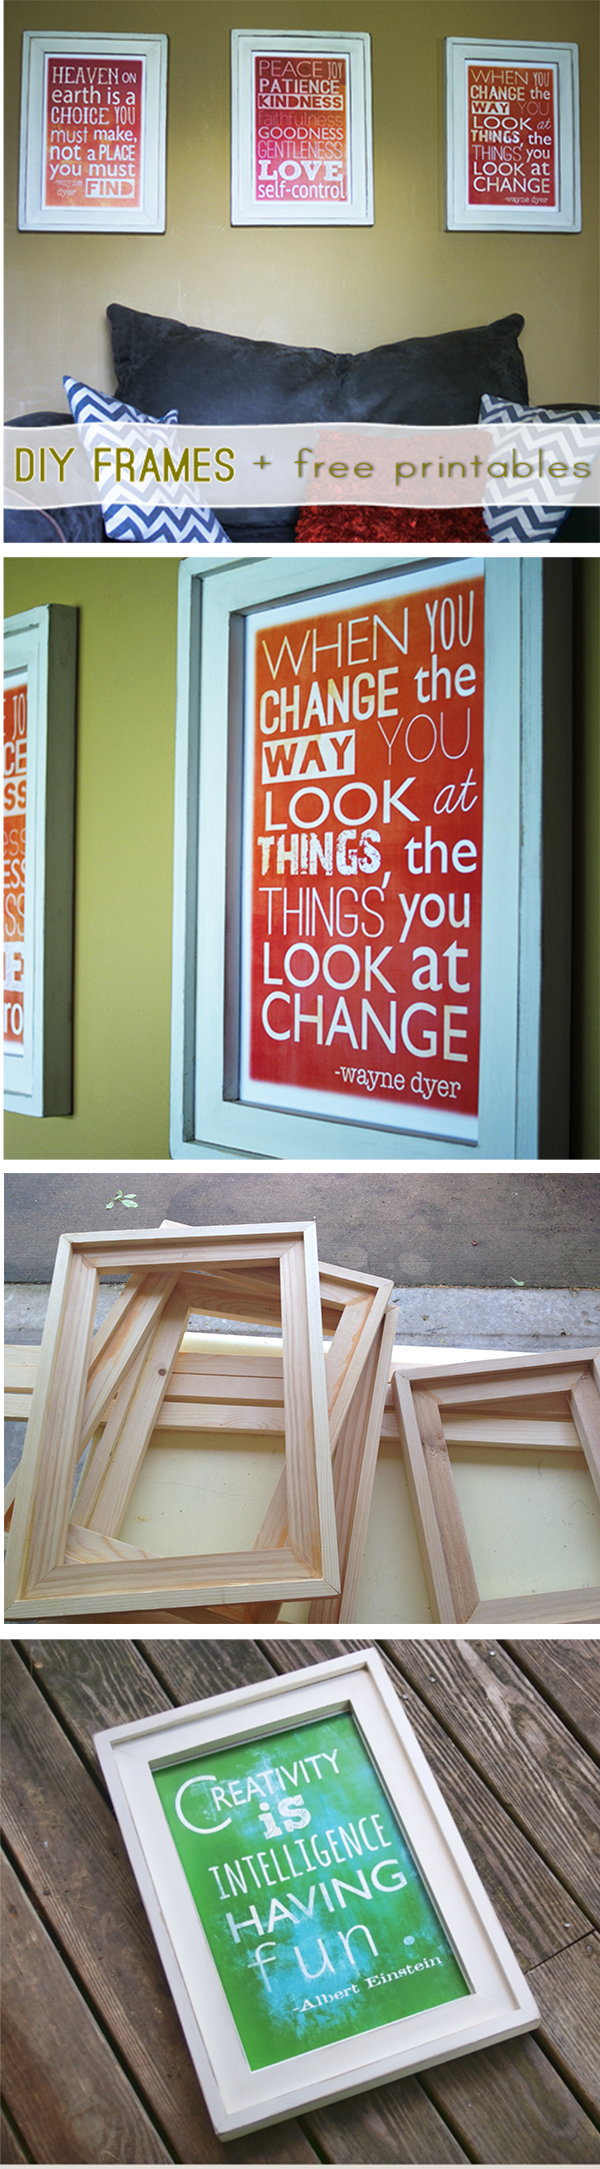 DIY Barnwood Frames from Ana White Plan + free inspirational ...